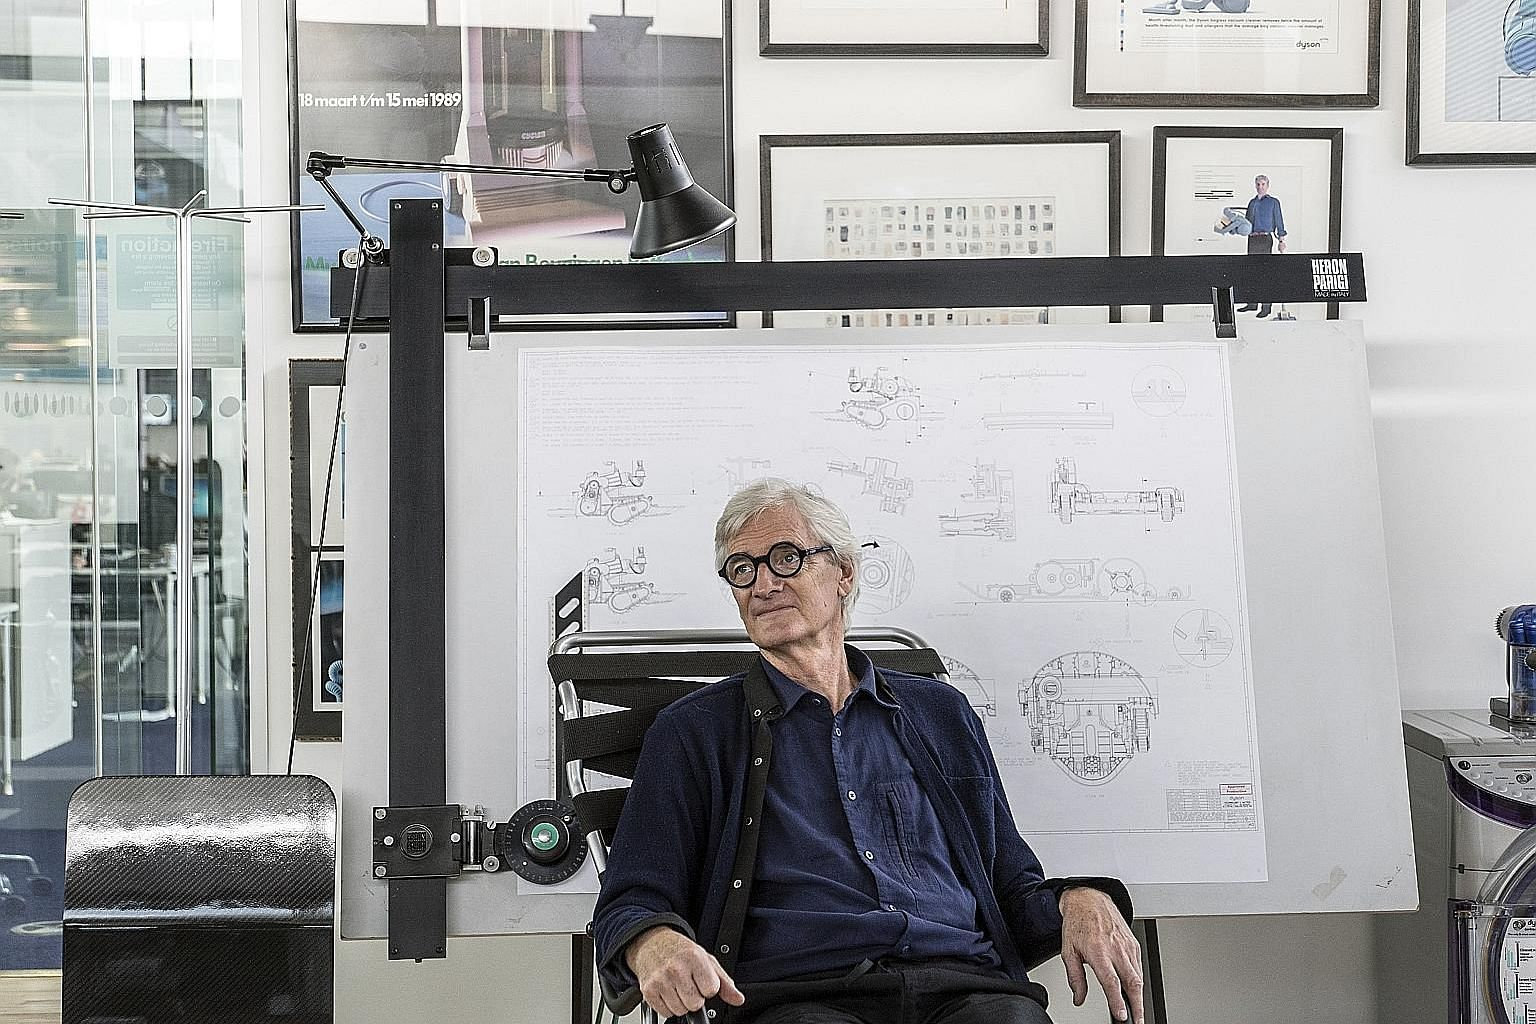 Mr James Dyson, says the writer, was clear-headed enough to abandon his electric vehicle project despite having declared his belief in it publicly, and hiring 500 staff. Having crossed the Rubicon, he crossed back when he discovered rough terrain on